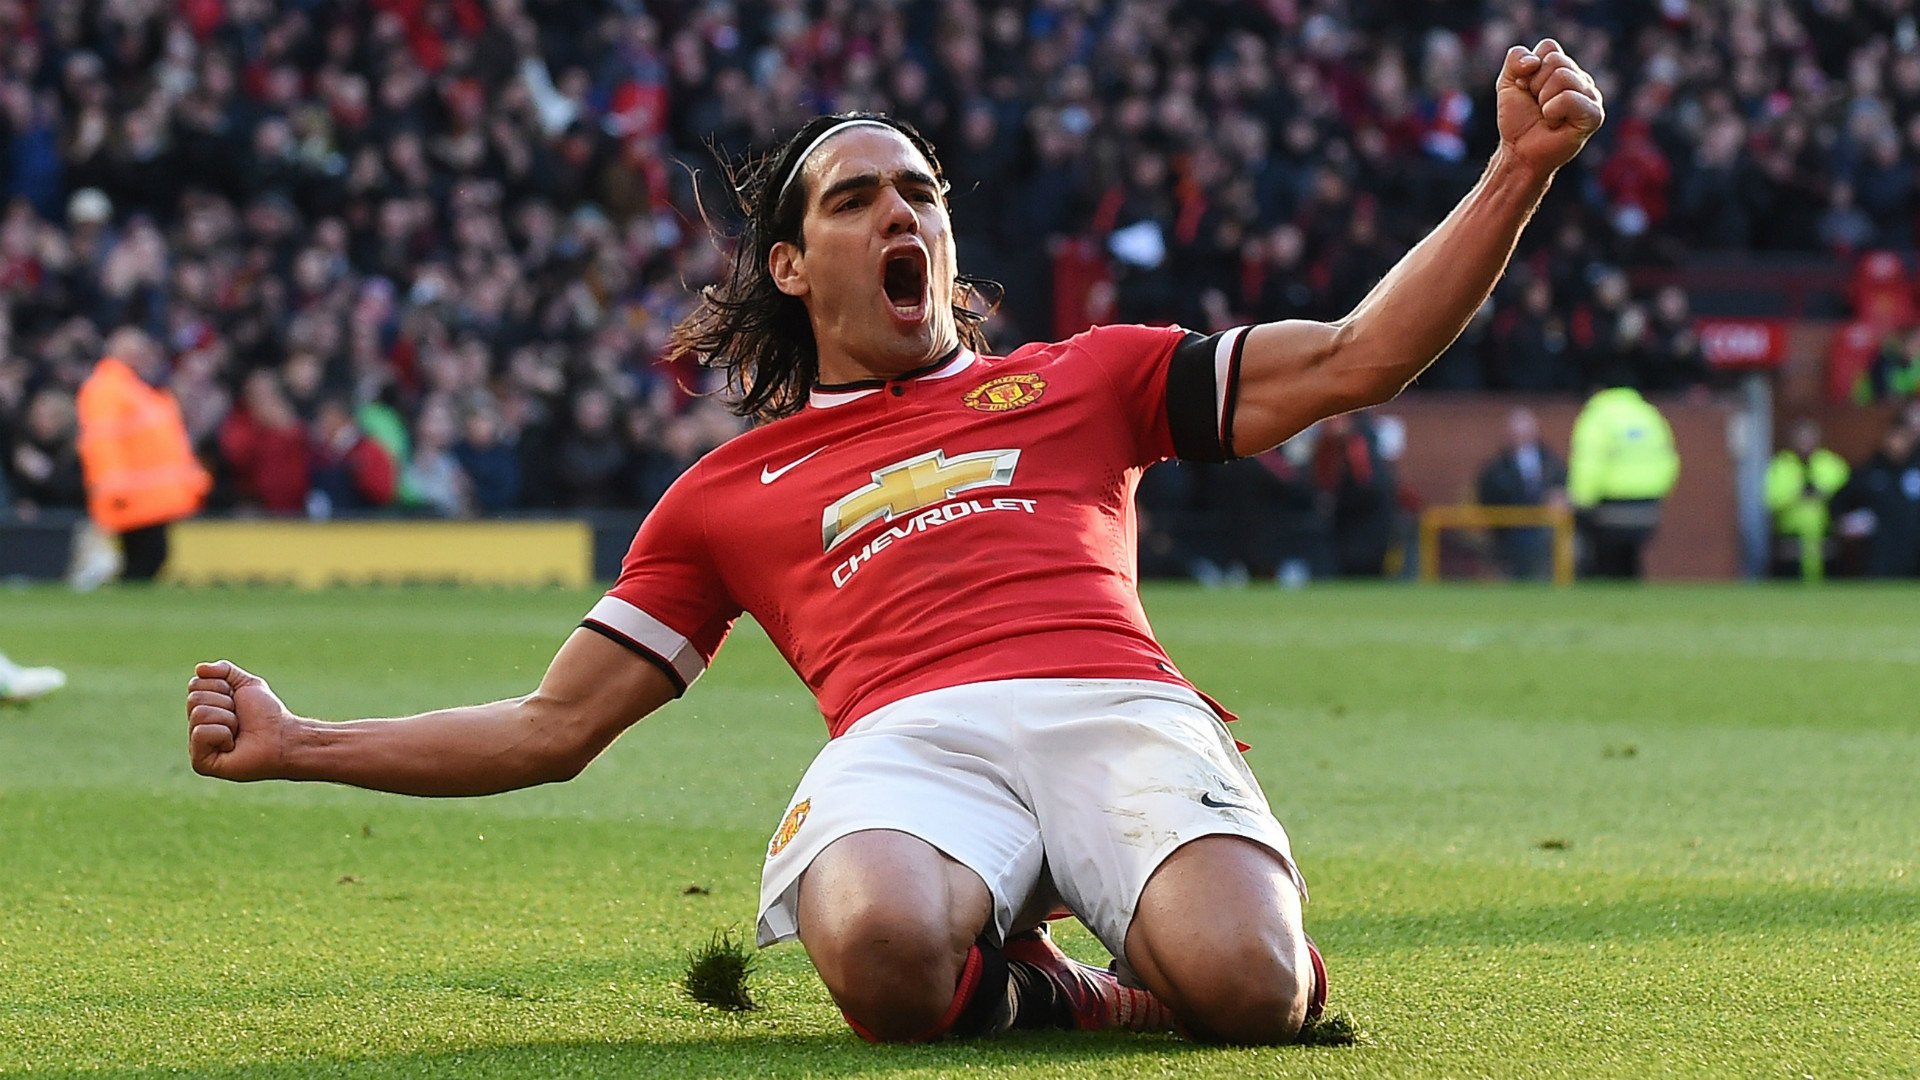 Radamel Falcao Wallpapers, Pictures, Images